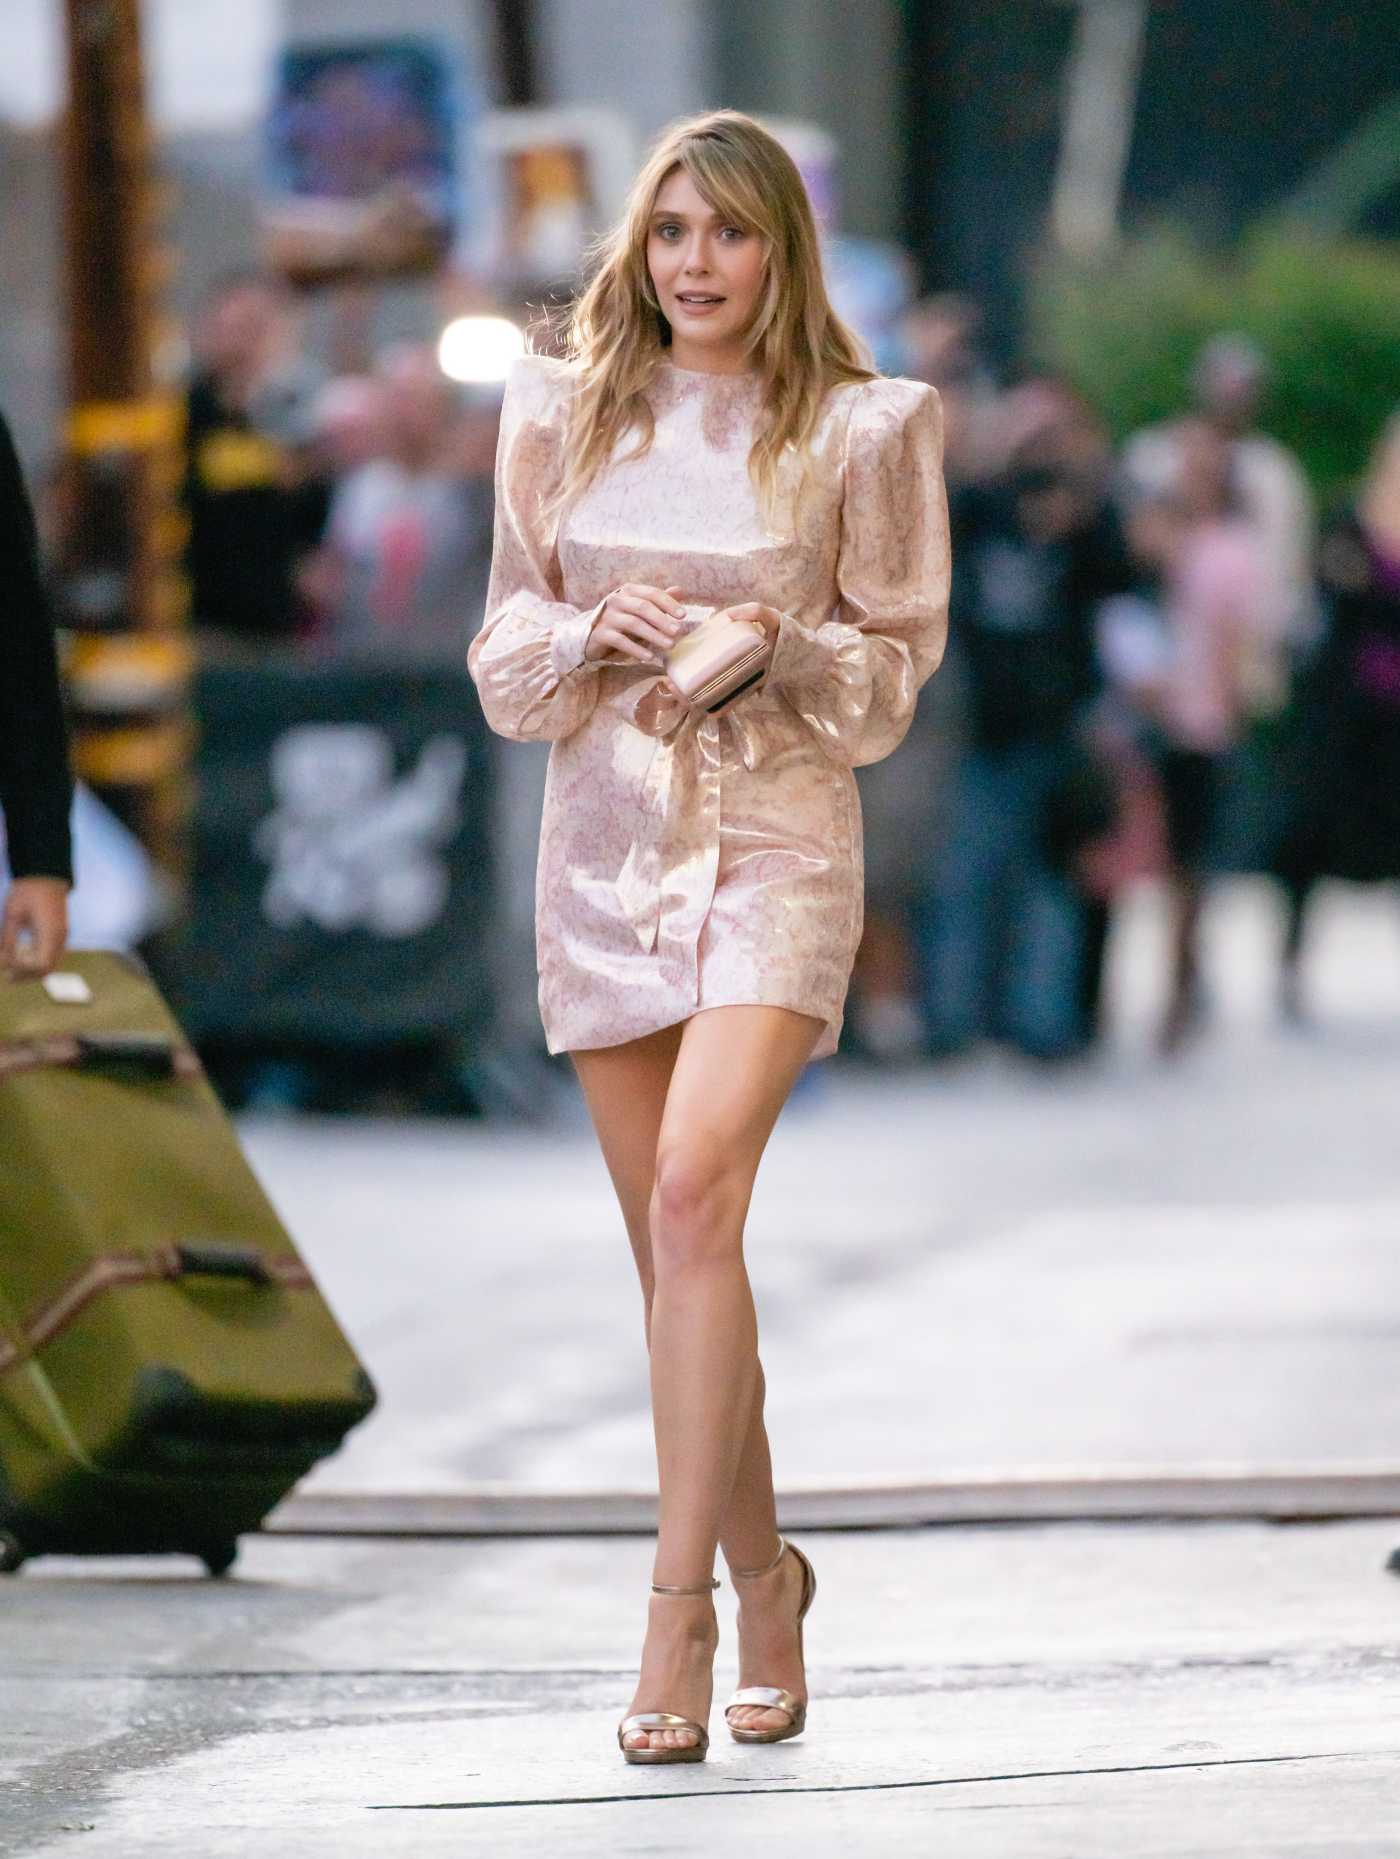 Elizabeth Olsen in a Pink Dress Leaves Jimmy Kimmel Live! in Hollywood 10/01/2019